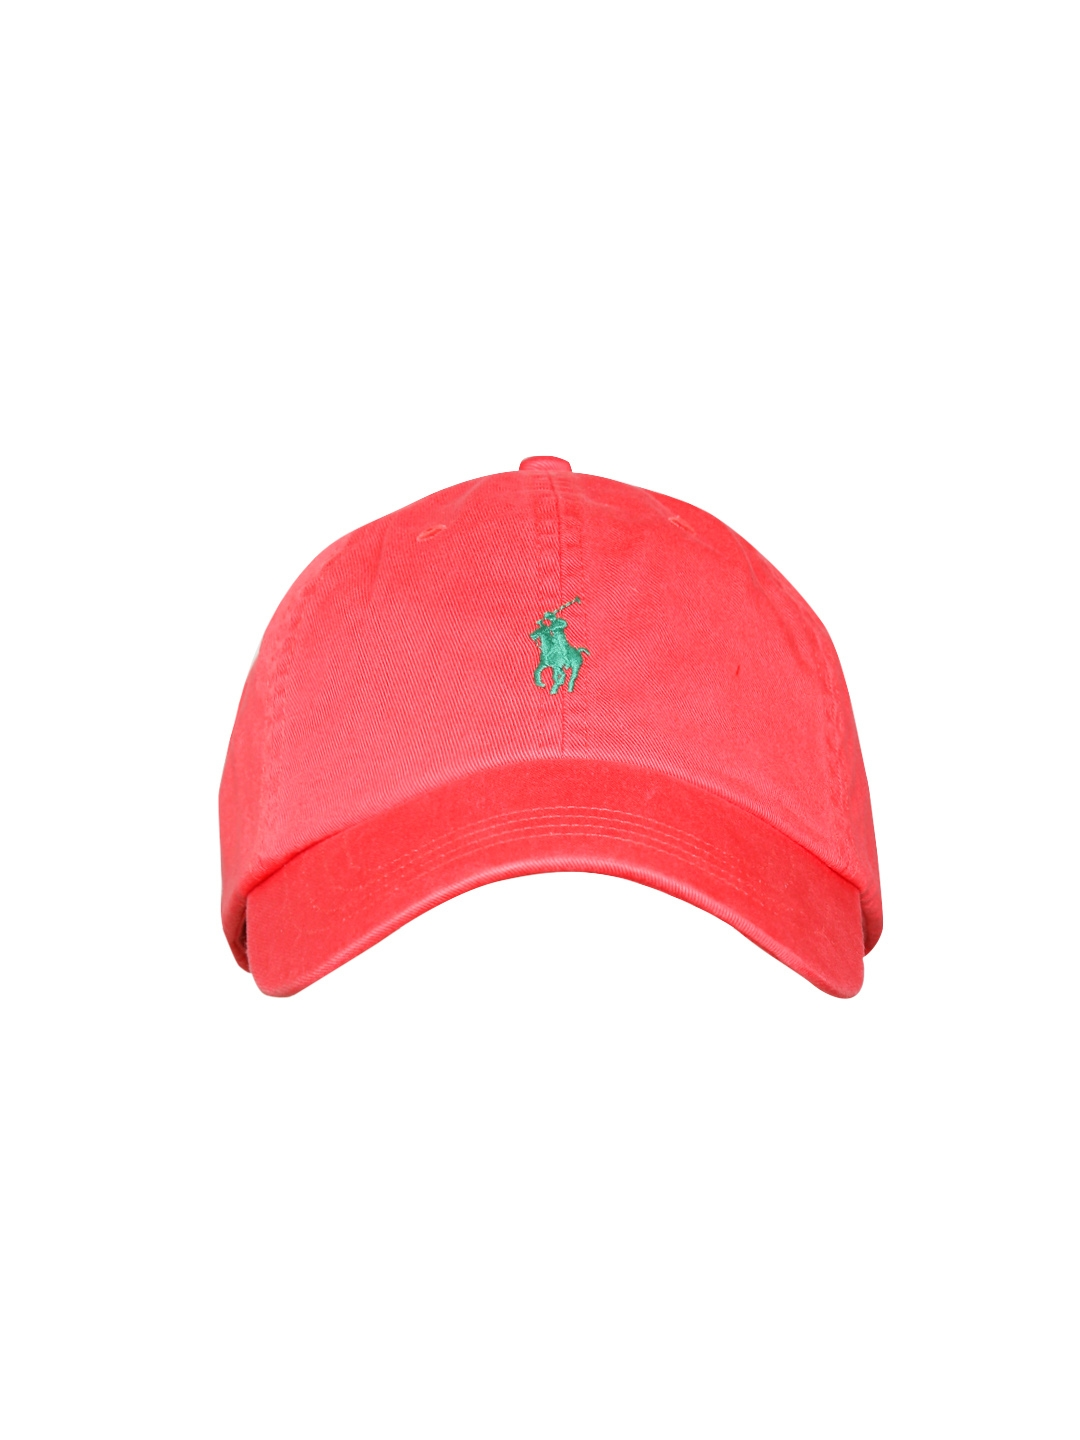 392db10de068ae Buy Polo Ralph Lauren Cotton Chino Baseball Cap - Caps for Men ...